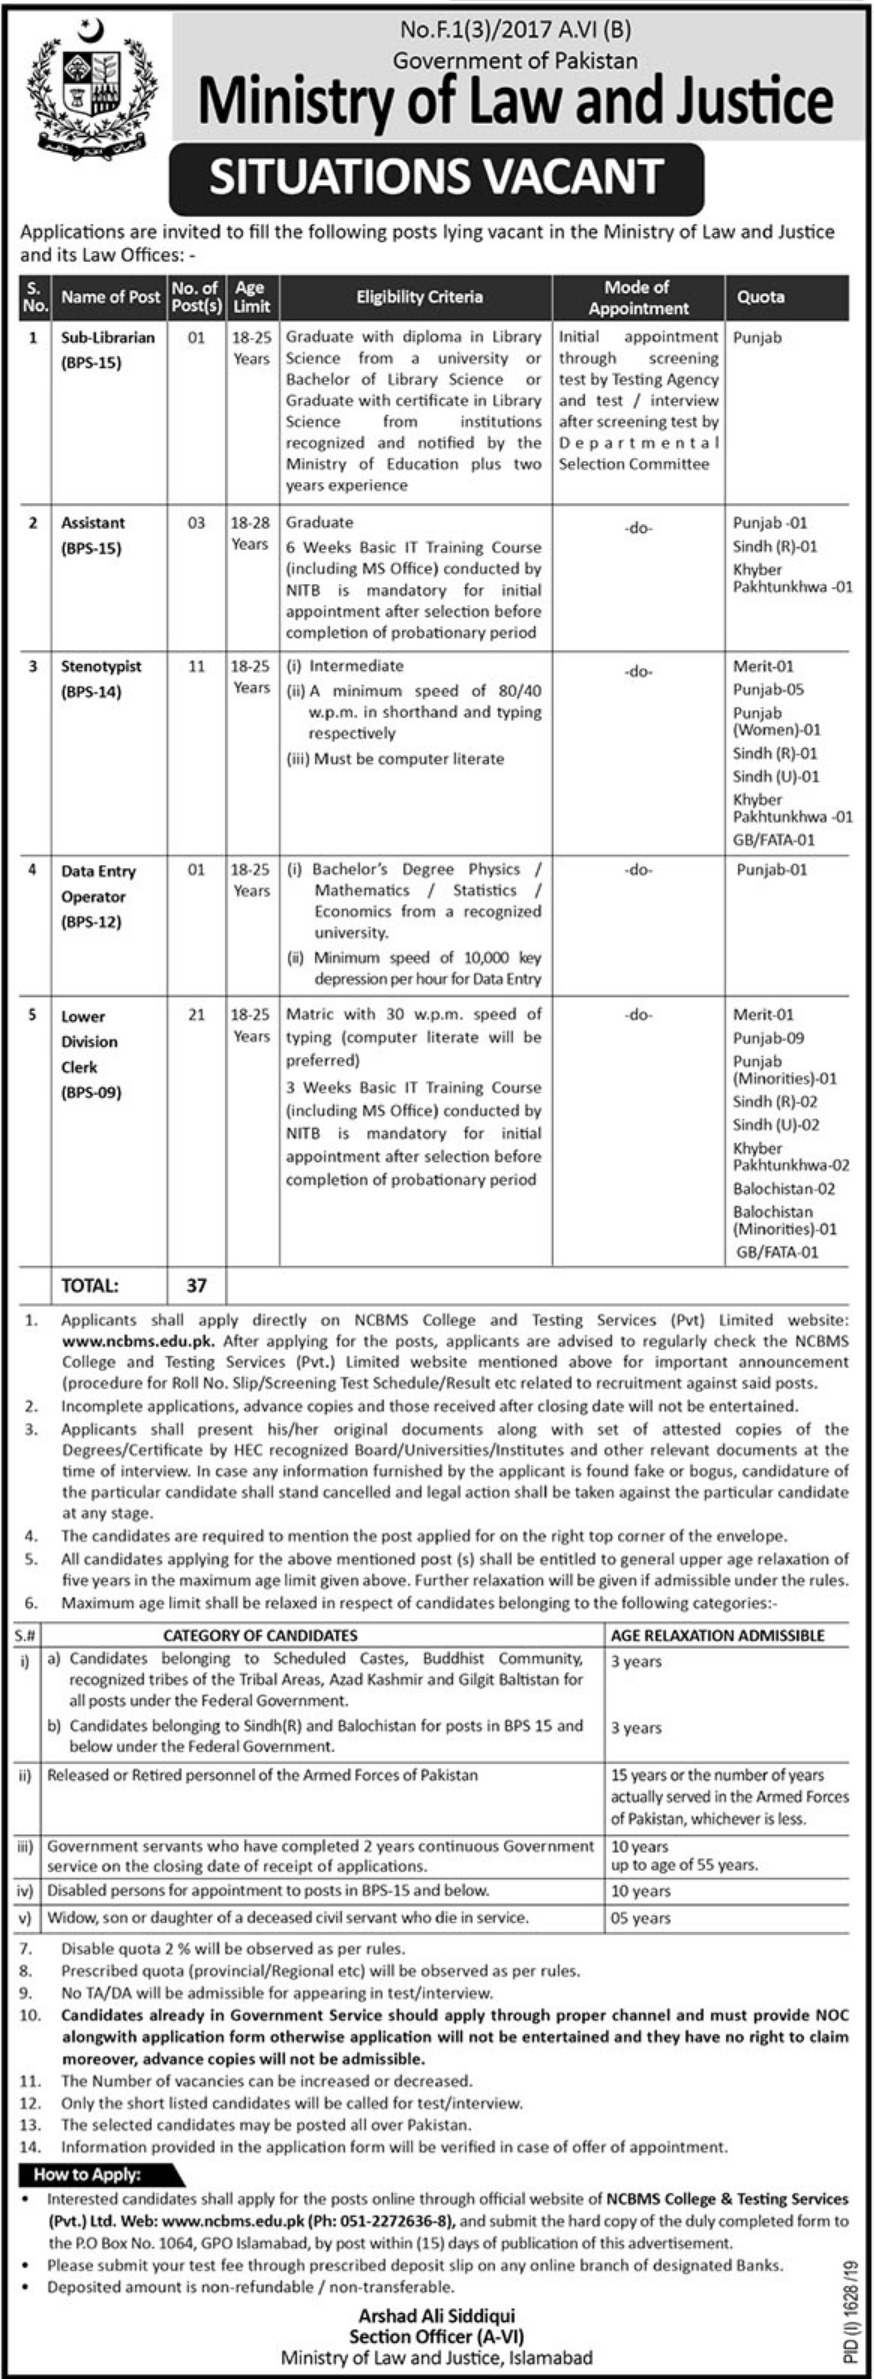 Ministry of Law Justice Jobs Via NCBMS